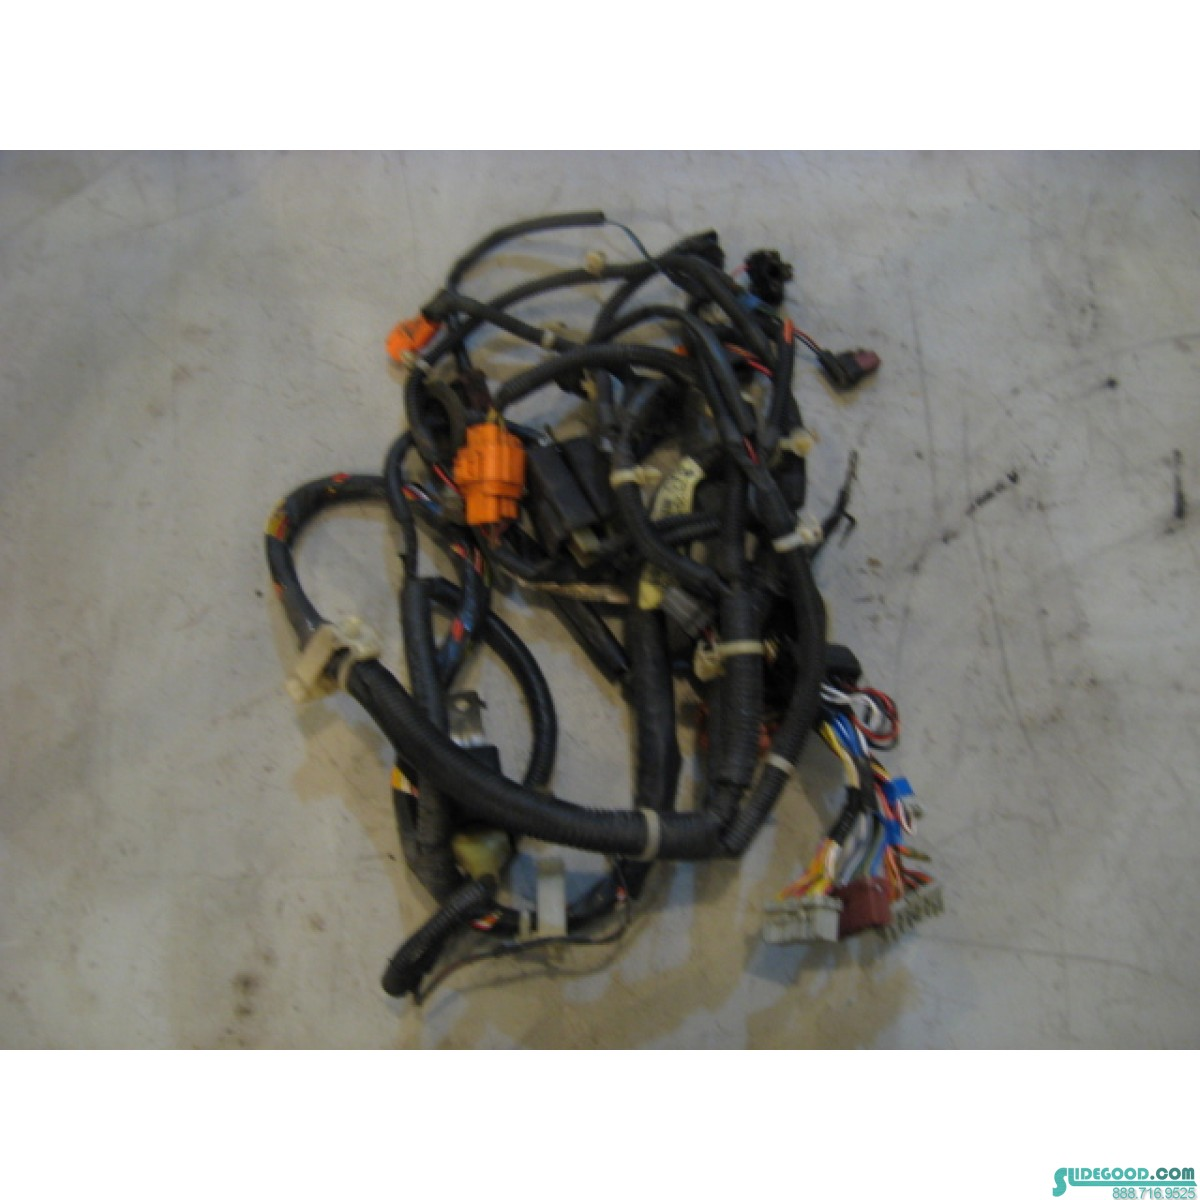 97 Honda Prelude Lh Fender Wiring Harness 32120 S30 A002 R11180